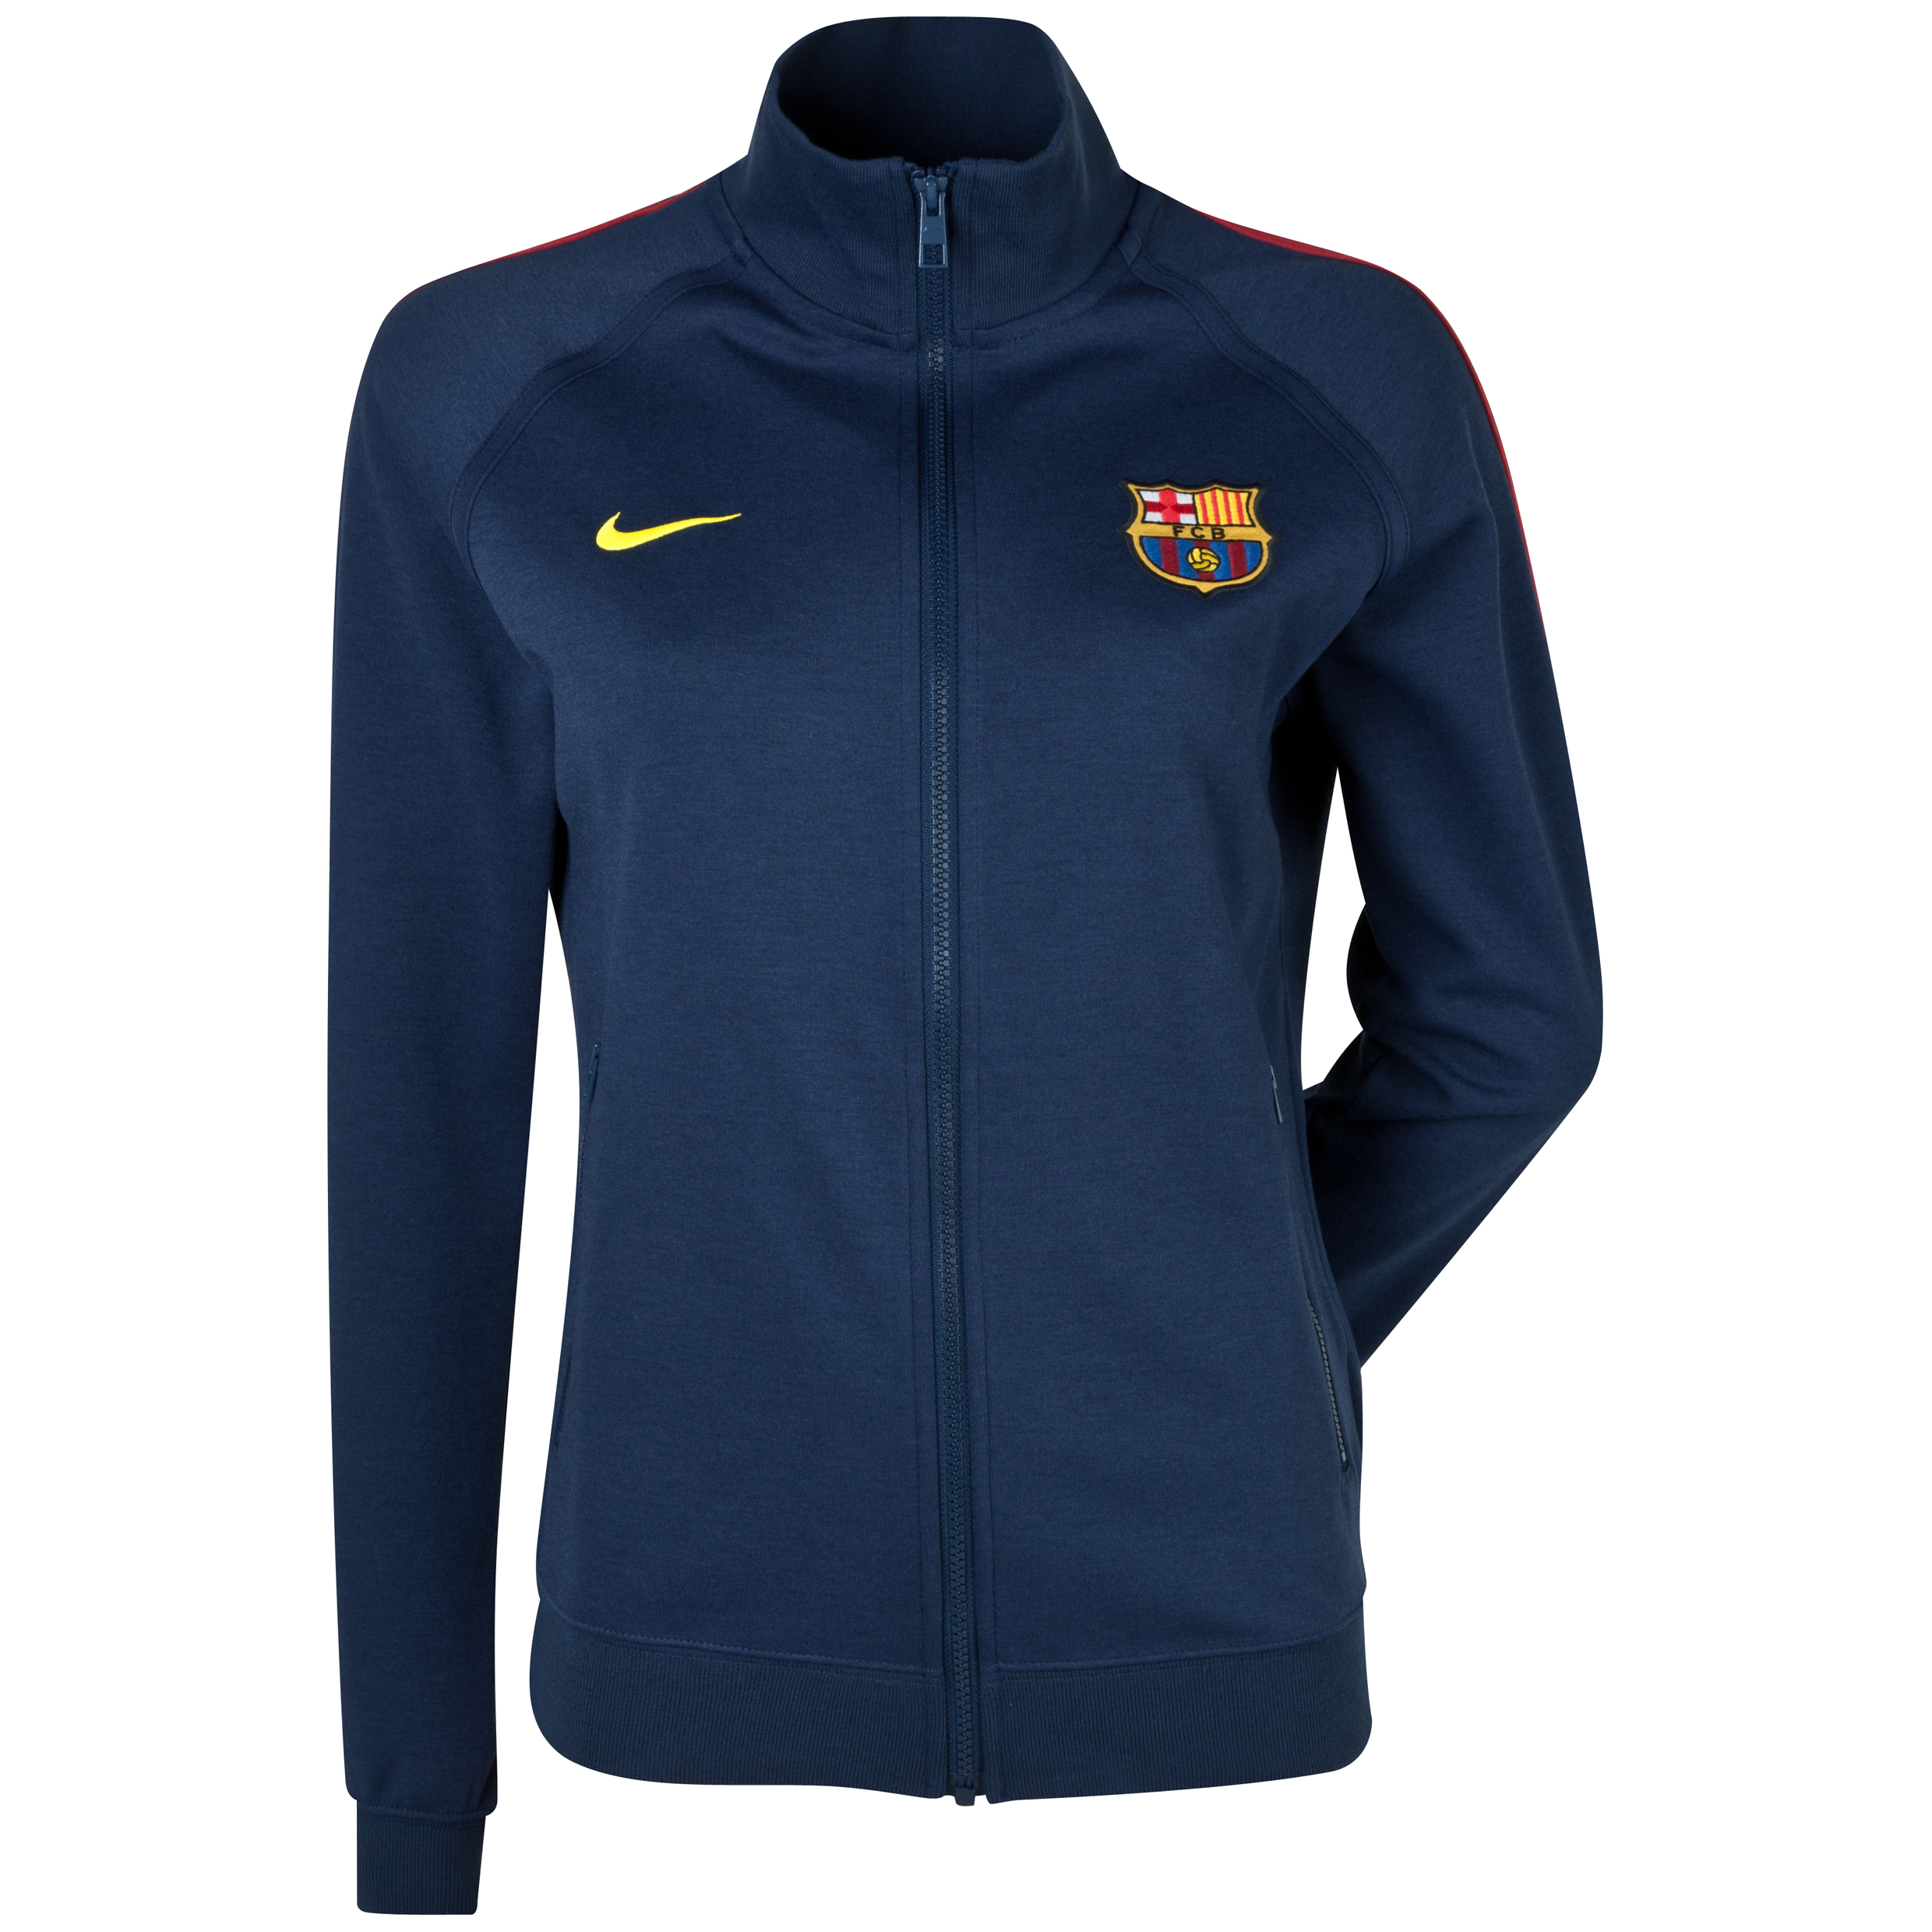 Barcelona Authentic Track Top - Womens Navy